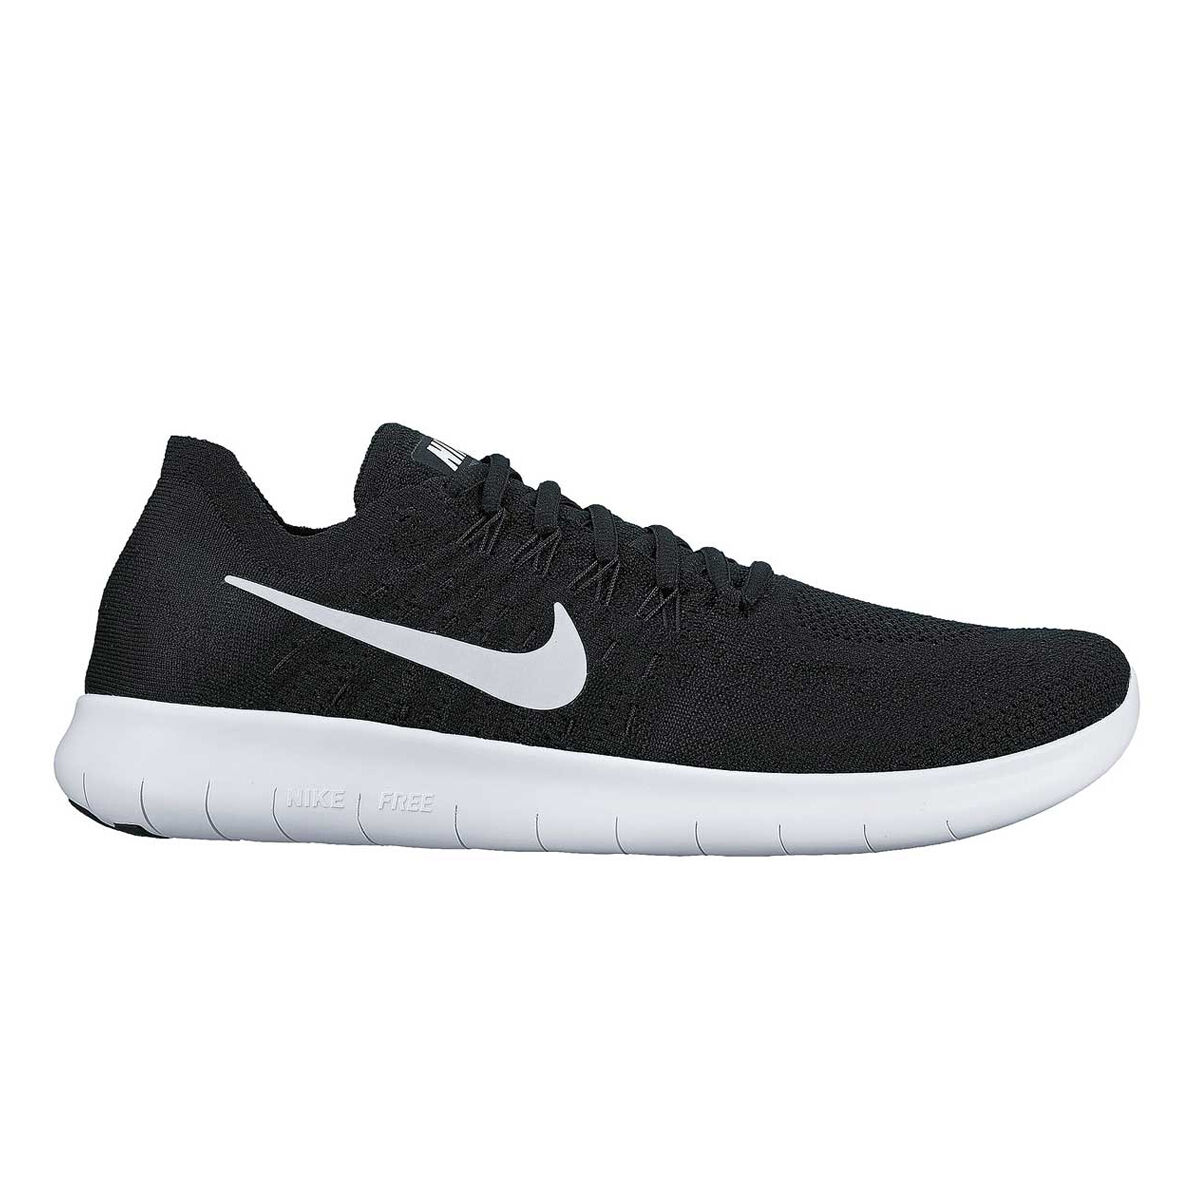 Nike Free Run Flyknit 2017 Mens Running Shoes | Rebel Sport